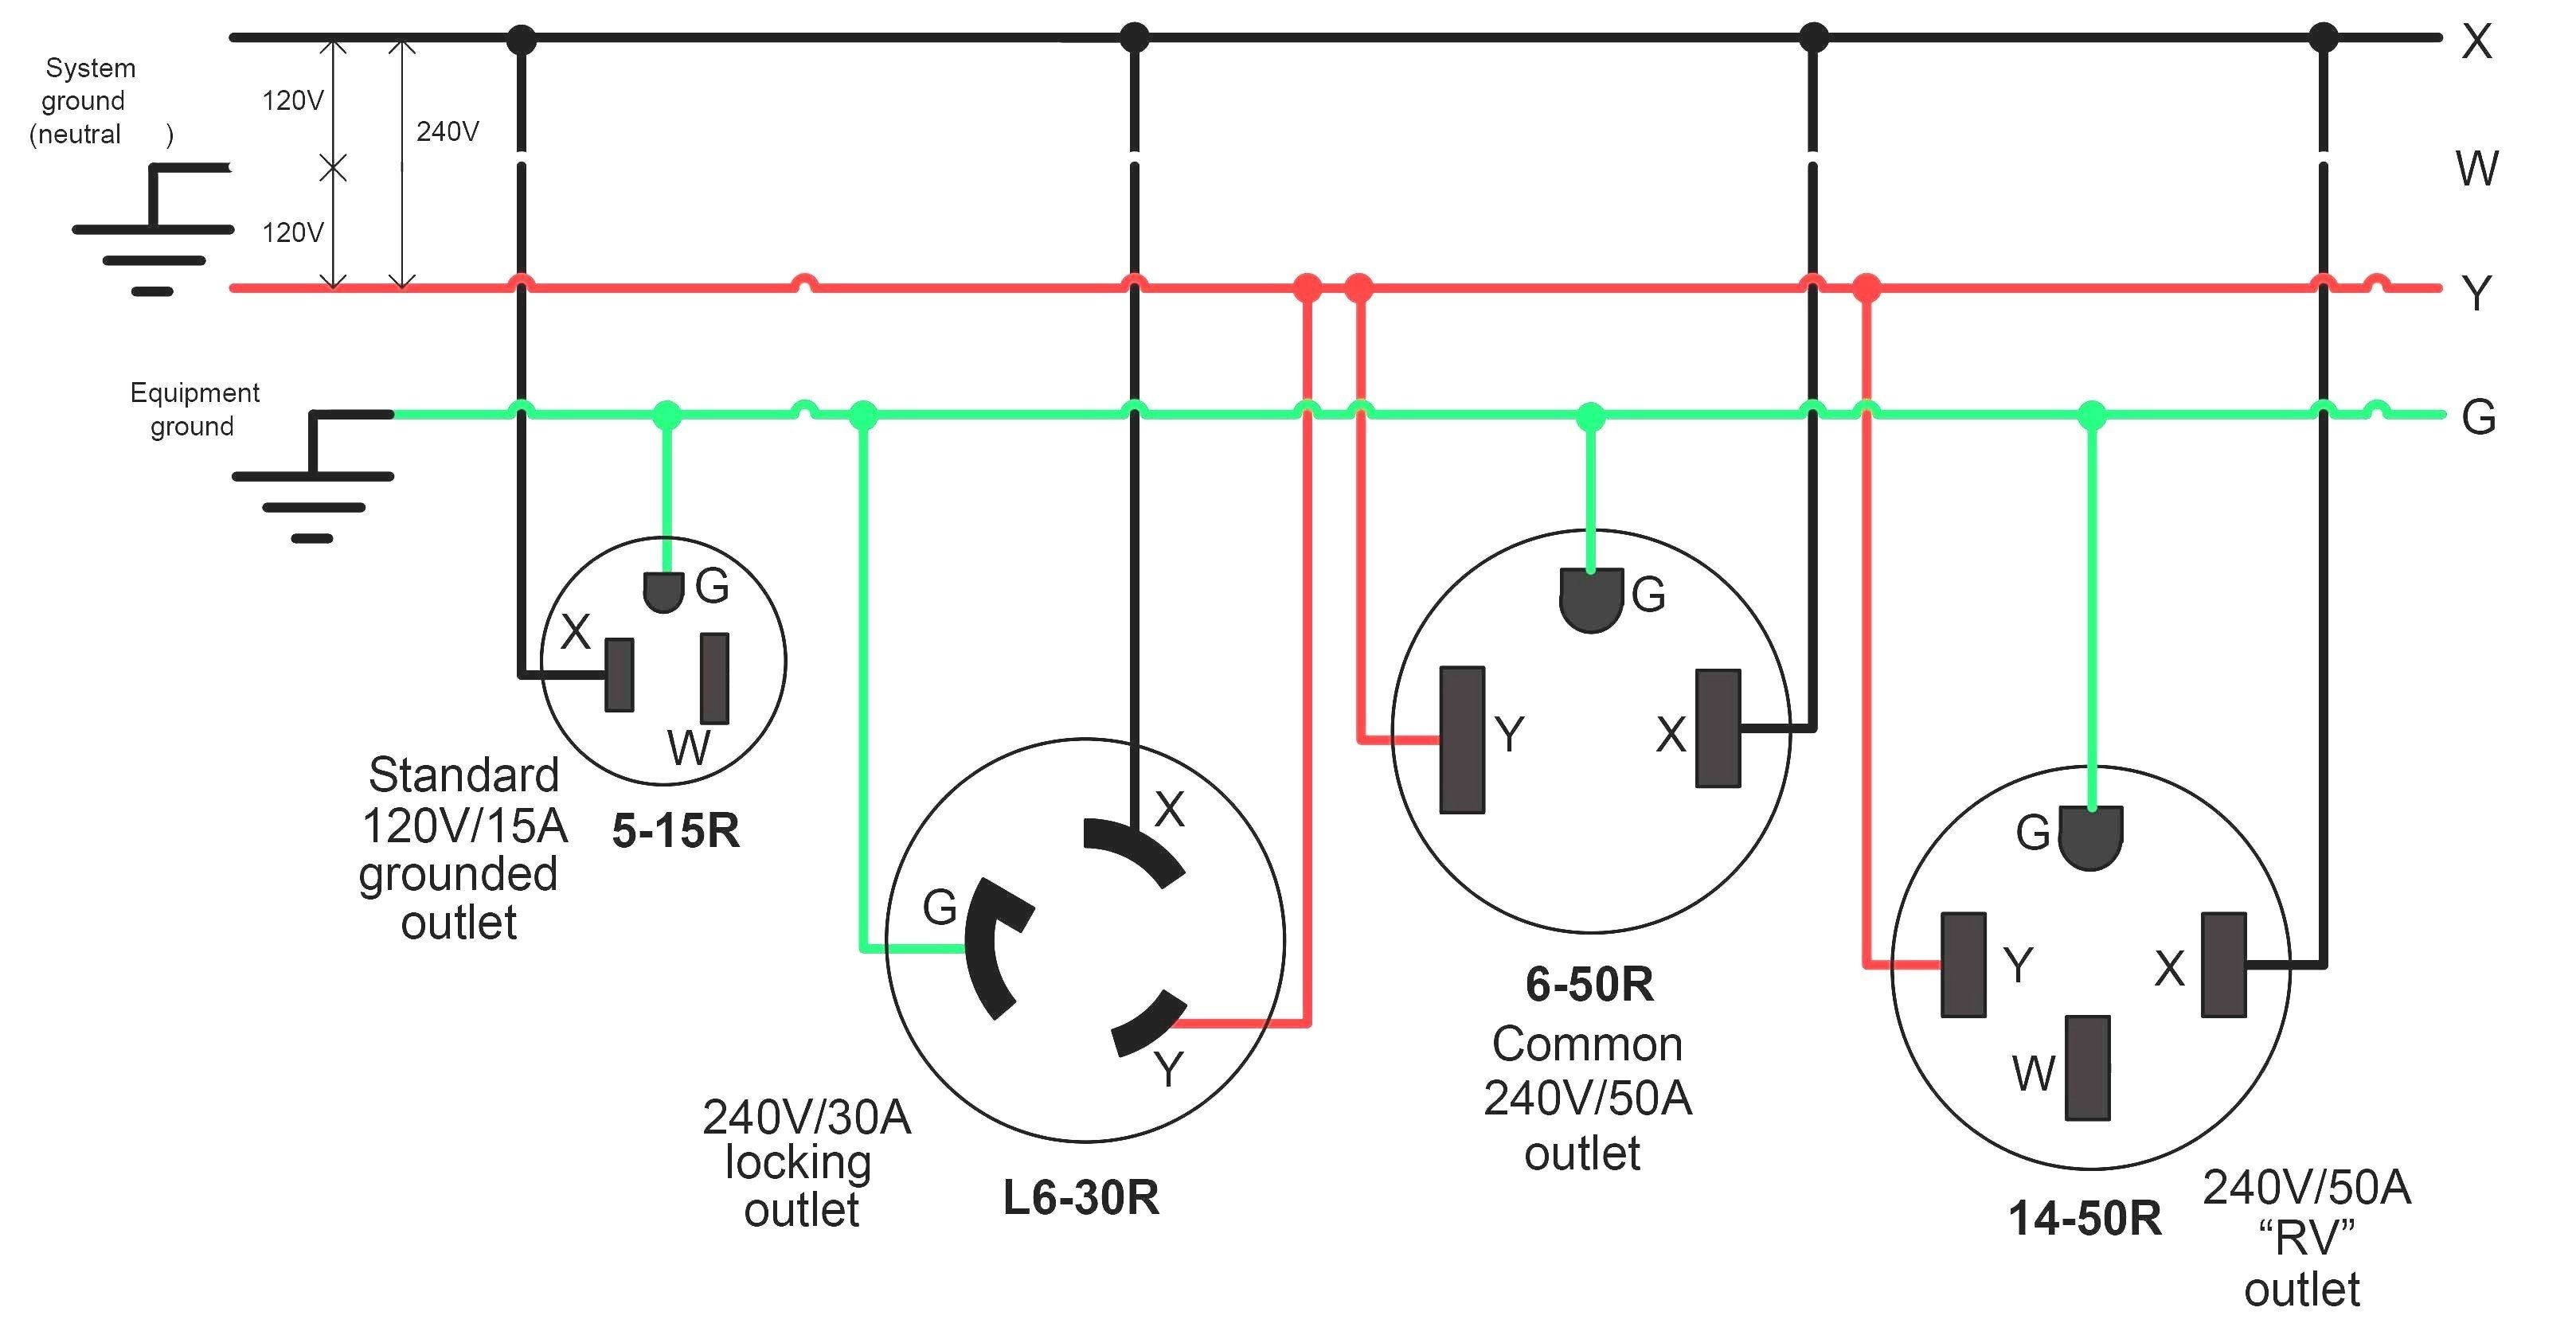 de711d97f18ebb1c86a9d30fd79a2df2  V Electrical Outlet Diagram on battery electrical outlet, three phase electrical outlet, switch electrical outlet, ac electrical outlet, solar electrical outlet, rv electrical outlet, 250v electrical outlet, 230v electrical outlet, 120v electrical outlet, wiring a 110 outlet, air conditioning electrical outlet, 115 volt electrical outlet, battery powered outlet, 208v electrical outlet, portable electrical outlet, dc electrical outlet, 240v electrical outlet, 115v electrical outlet, outdoor electrical outlet,